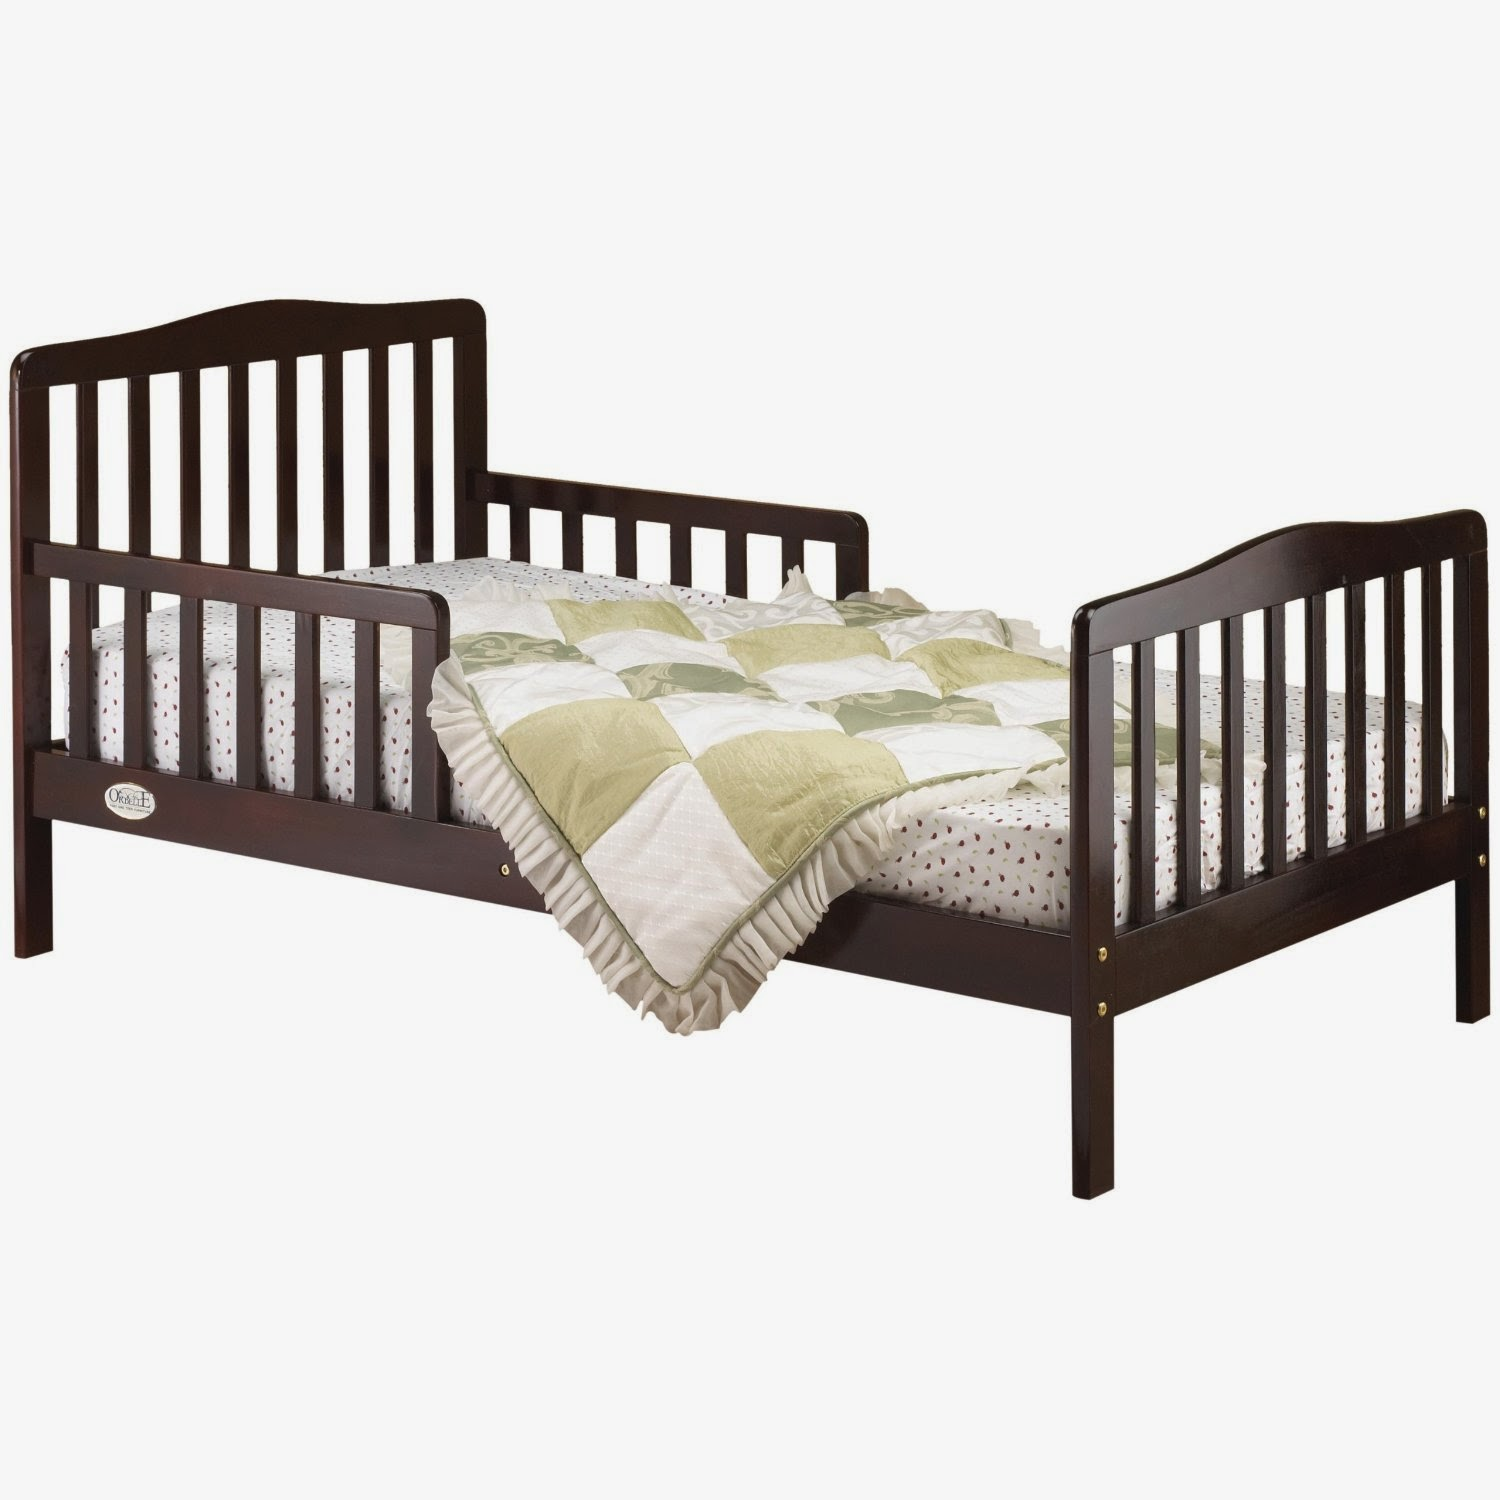 Ideas for your babies bed furniture